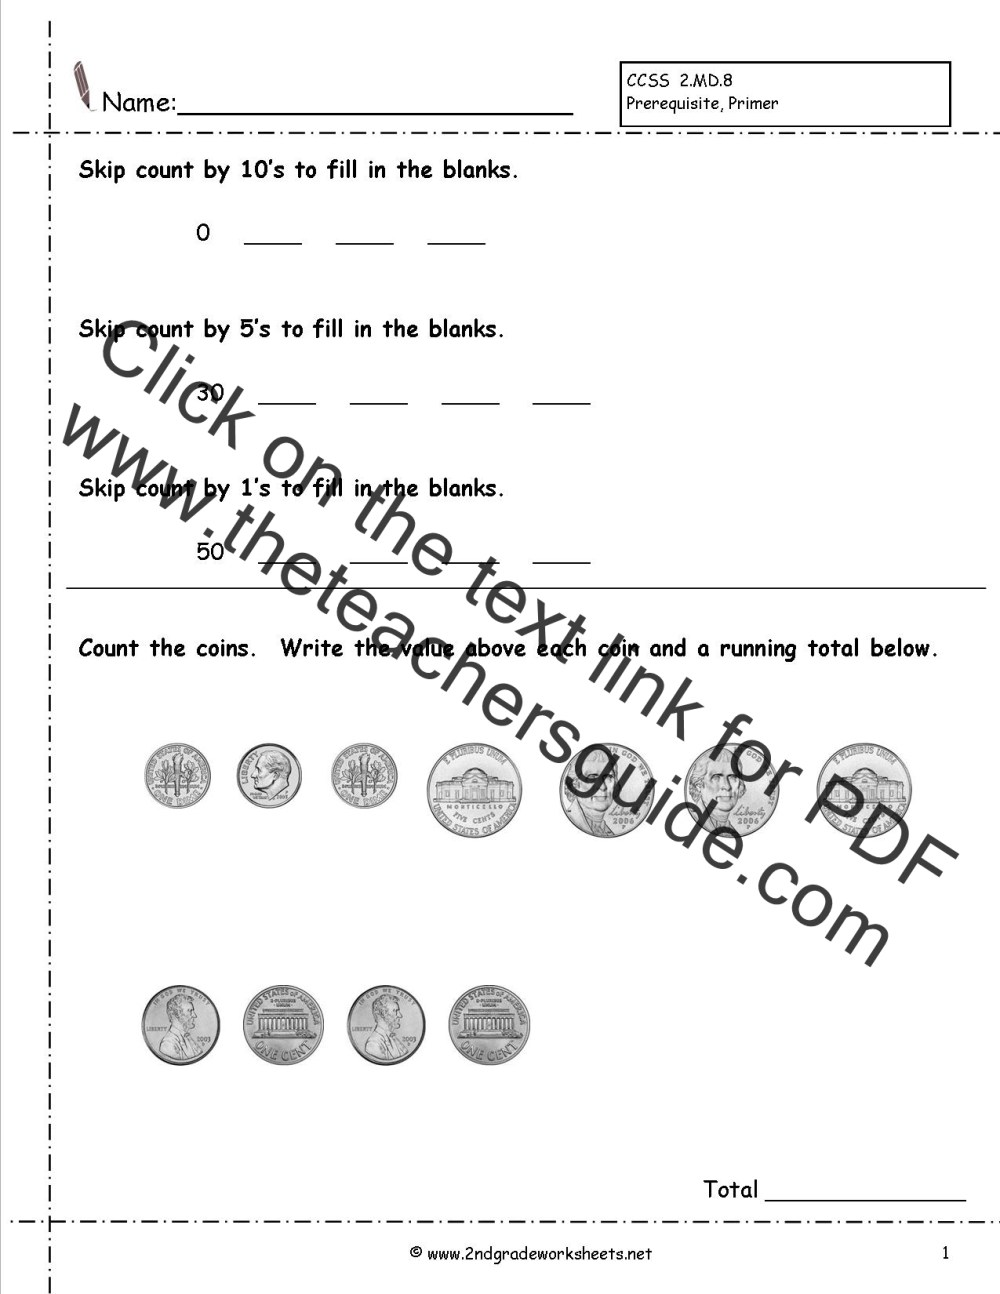 medium resolution of 27 Best Counting Money Worksheets Bills images on Worksheets Ideas